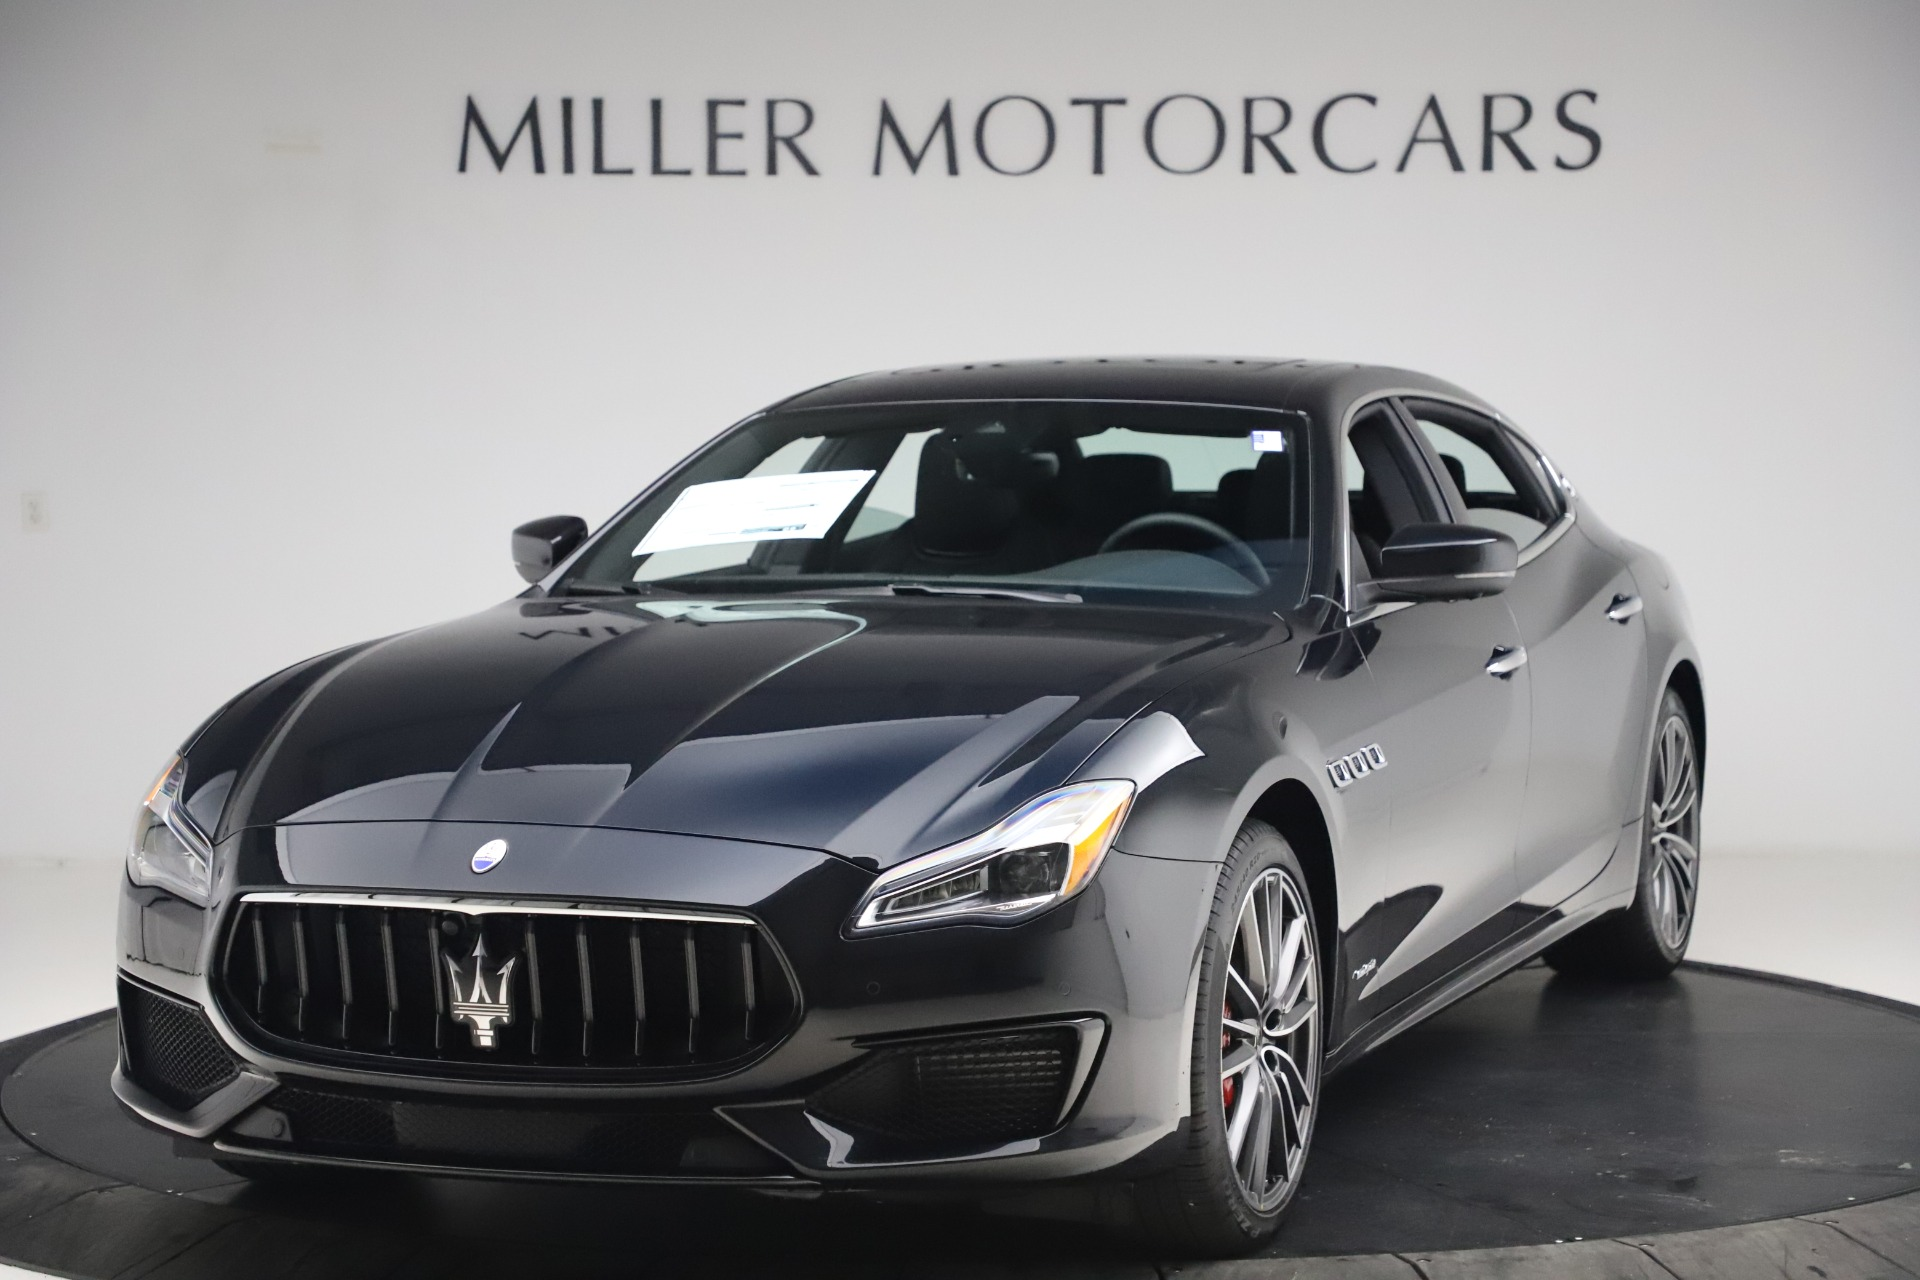 New 2021 Maserati Quattroporte S Q4 GranSport for sale $129,185 at Bugatti of Greenwich in Greenwich CT 06830 1